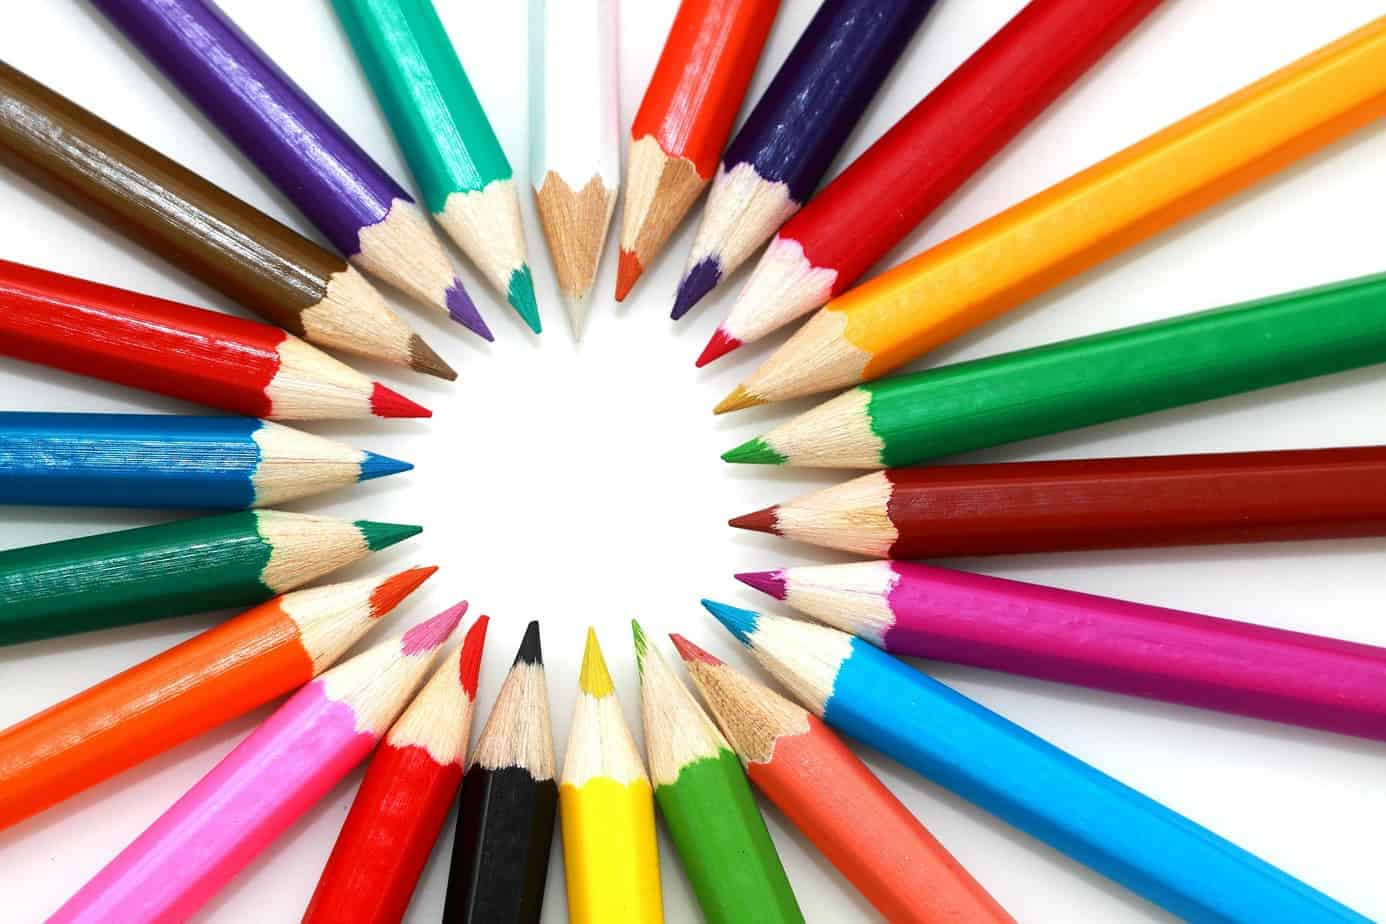 several colouring pencils to use to make a poster when the kids are bored at home